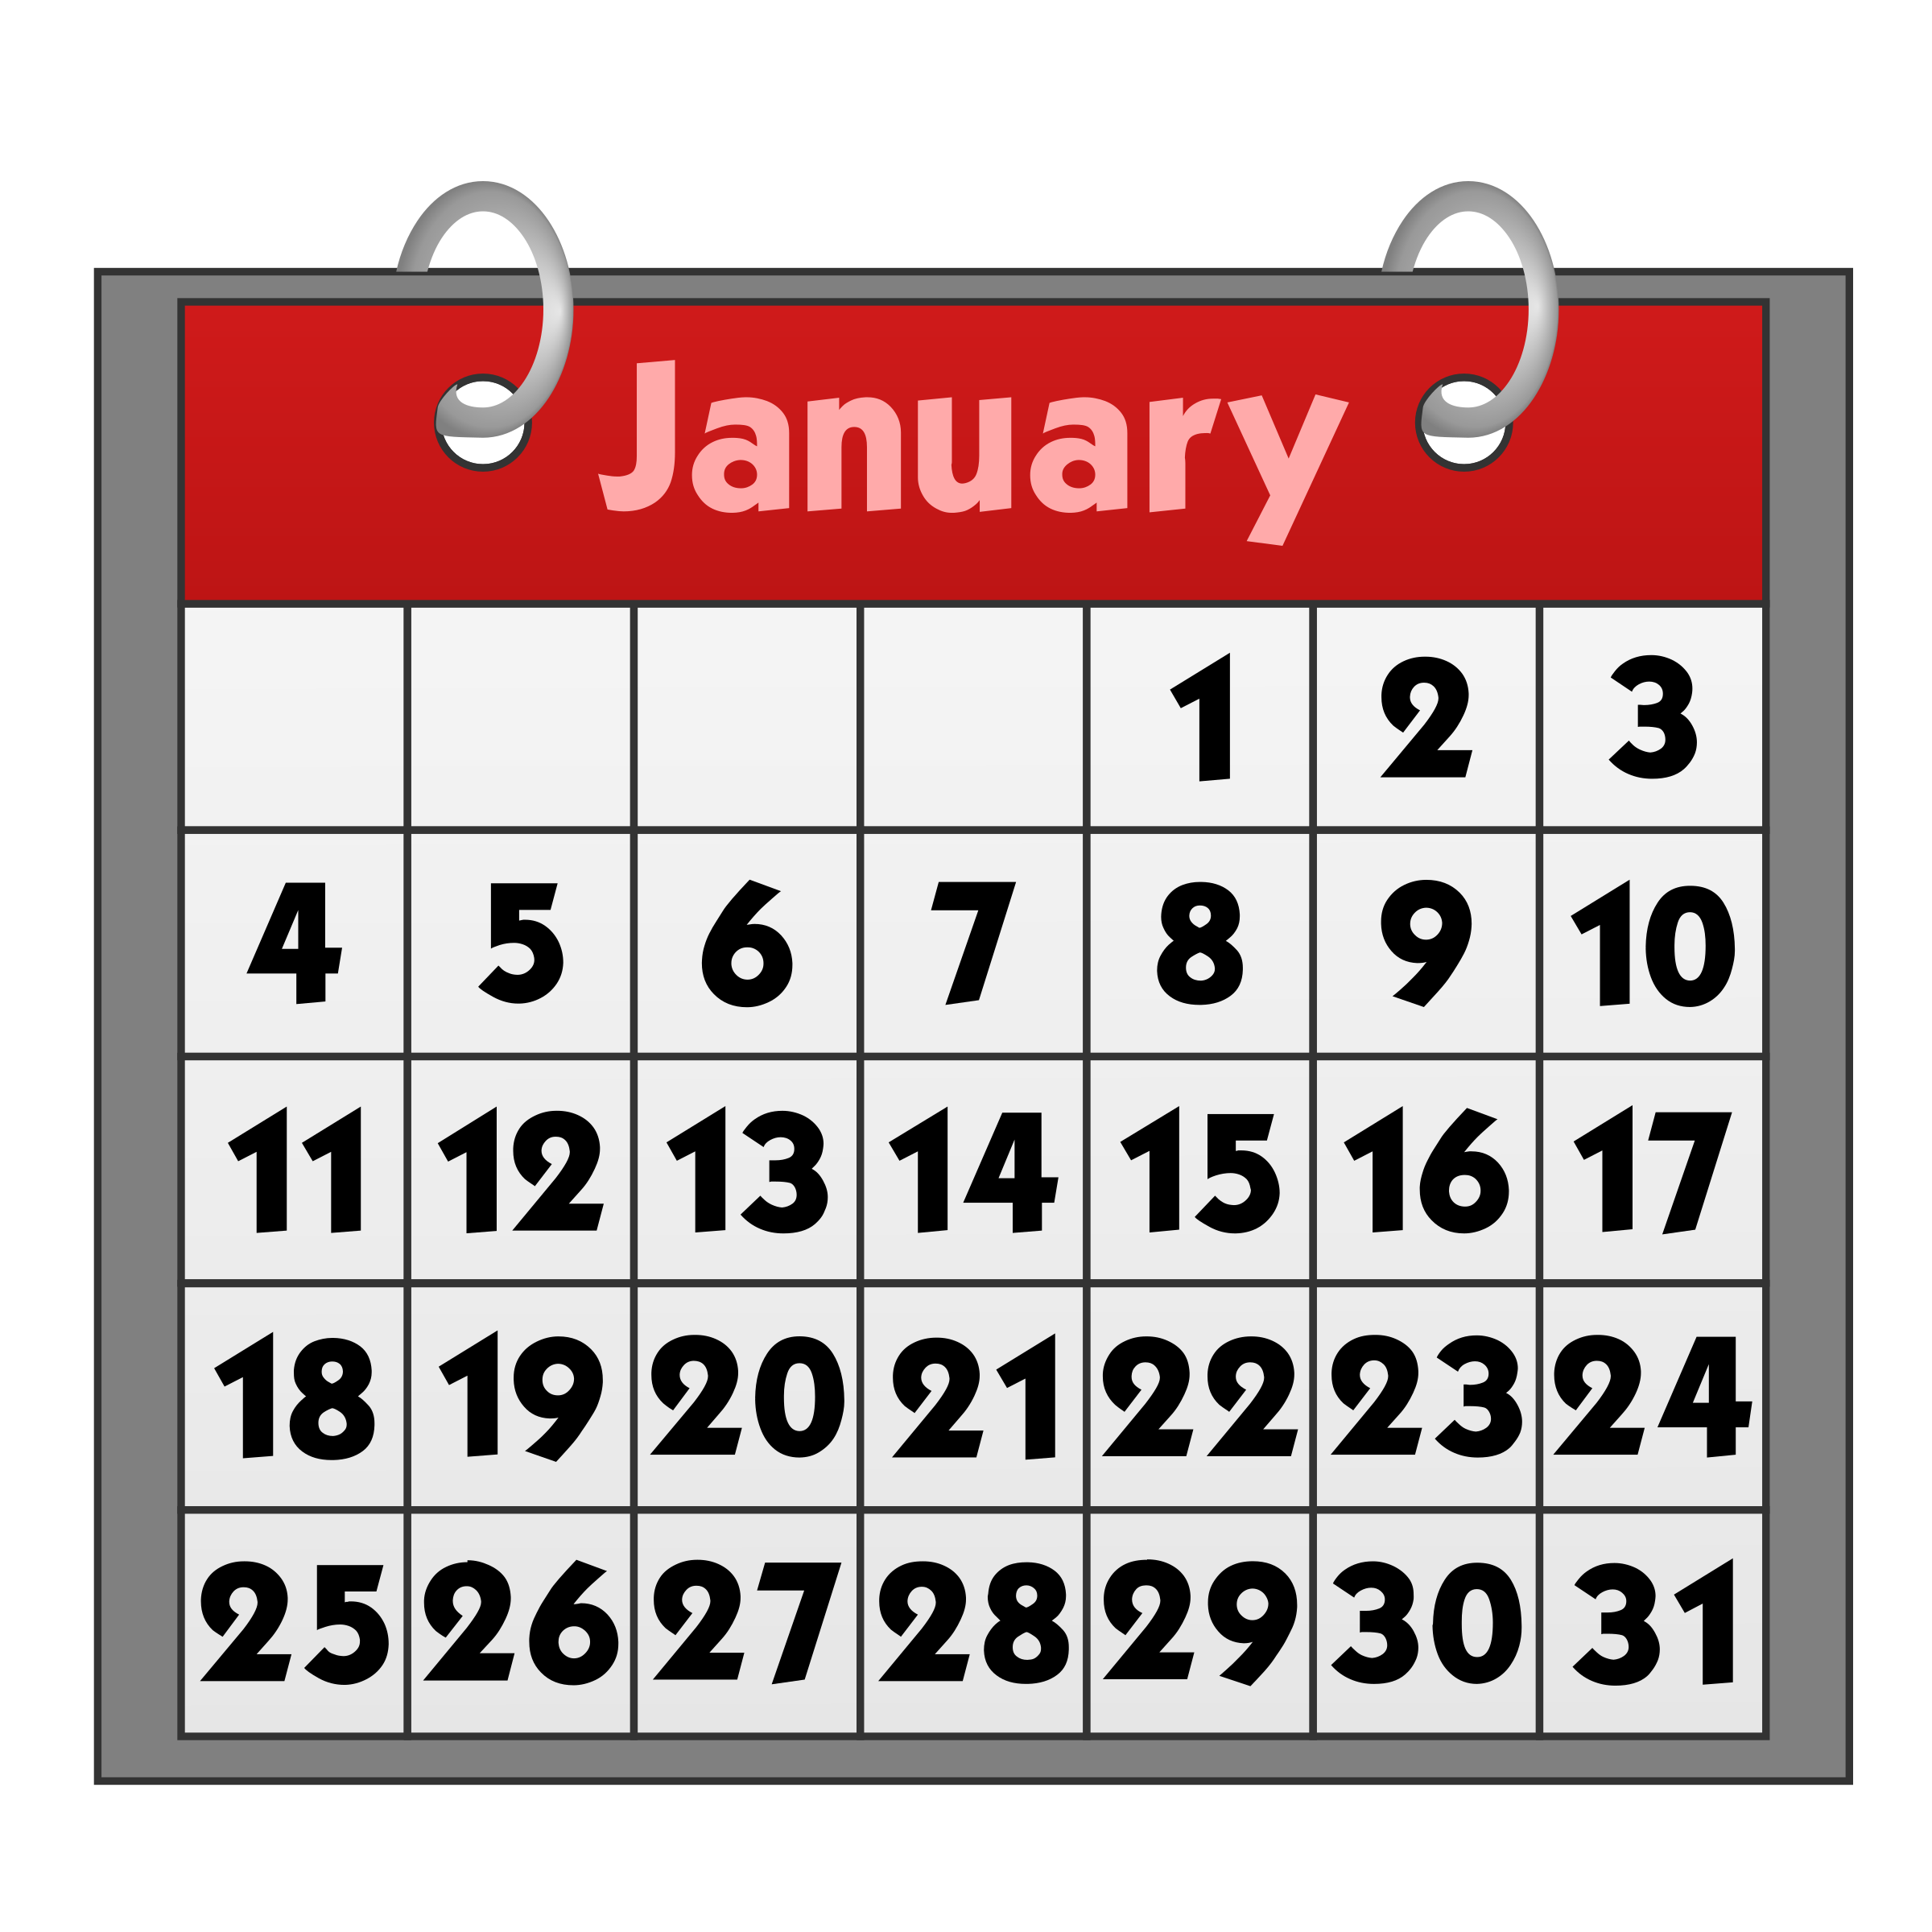 Calendar free to use cliparts 2-Calendar free to use cliparts 2-1